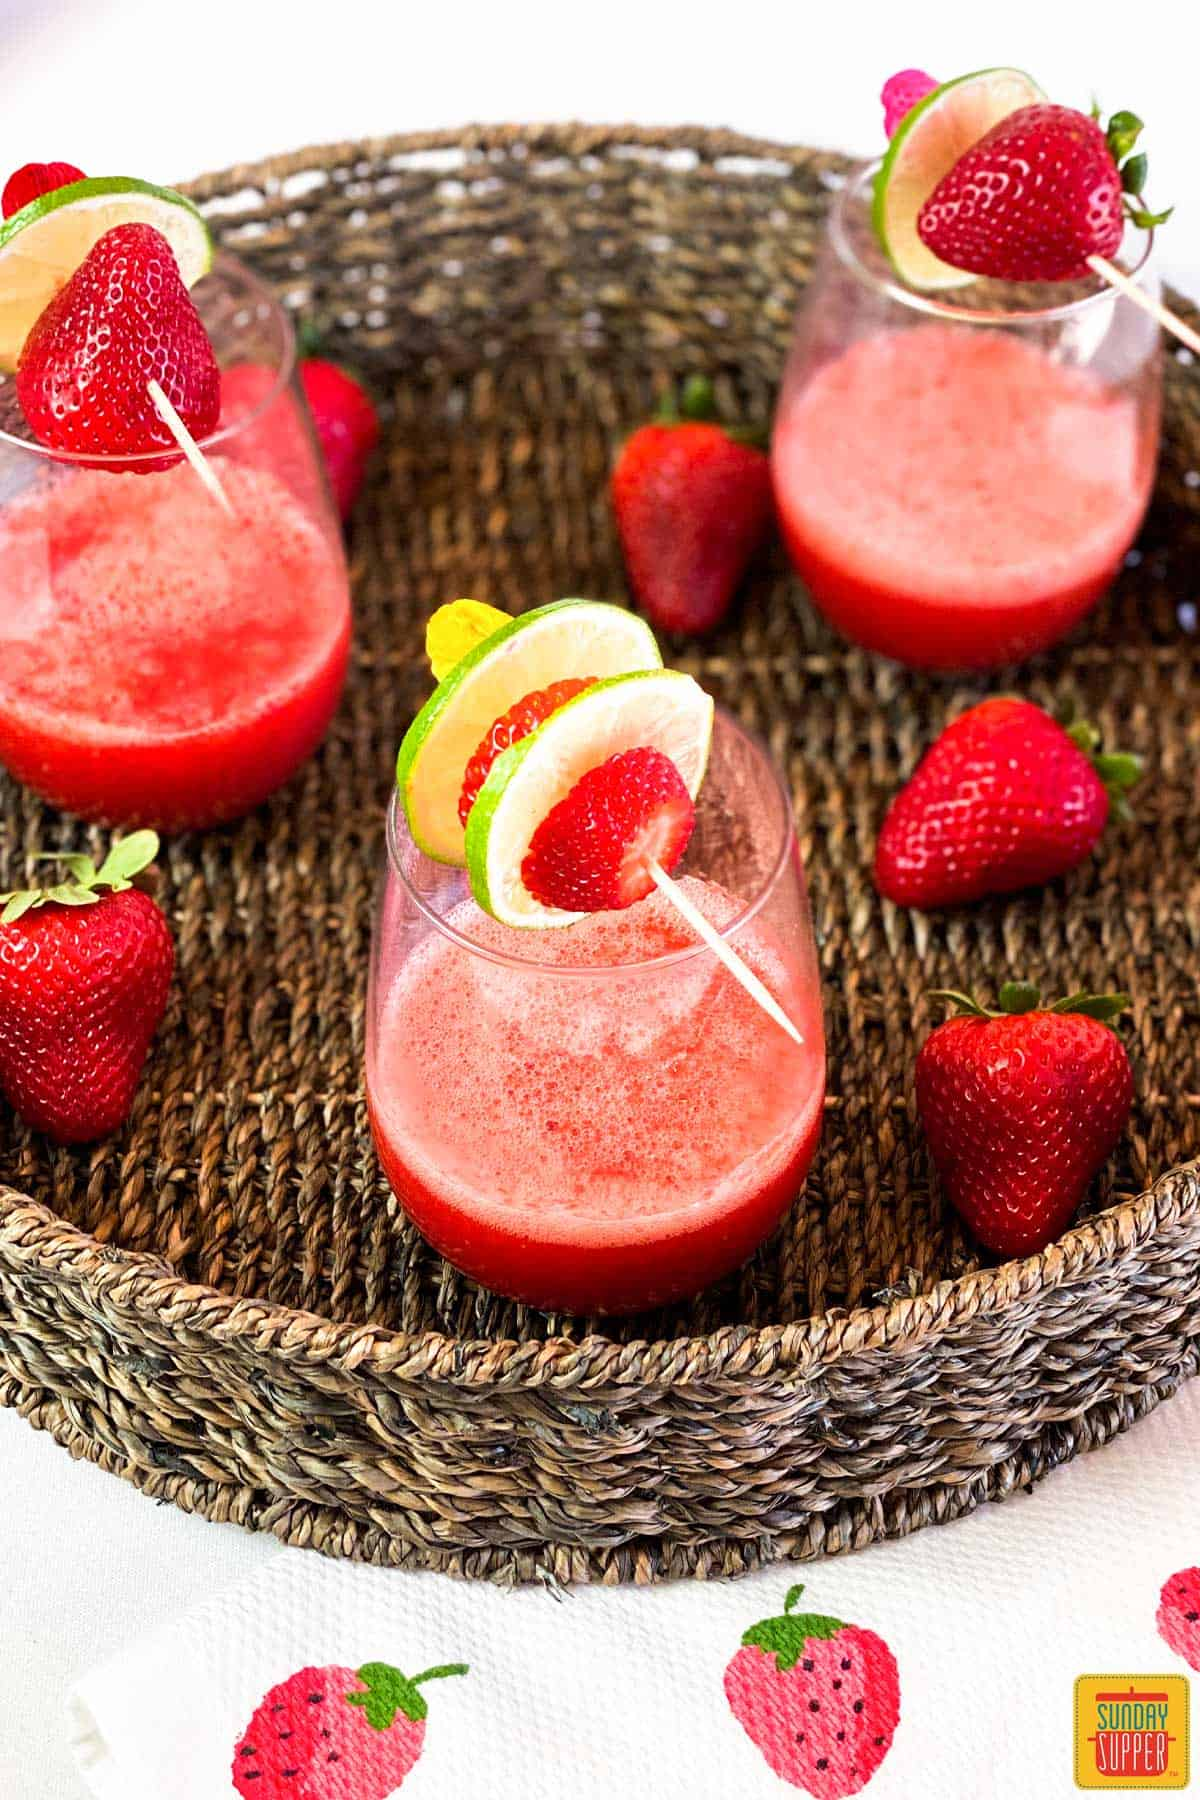 A glass of strawberry daiquiri recipe with fruit skewered on top, fresh berries, and two glasses in the background